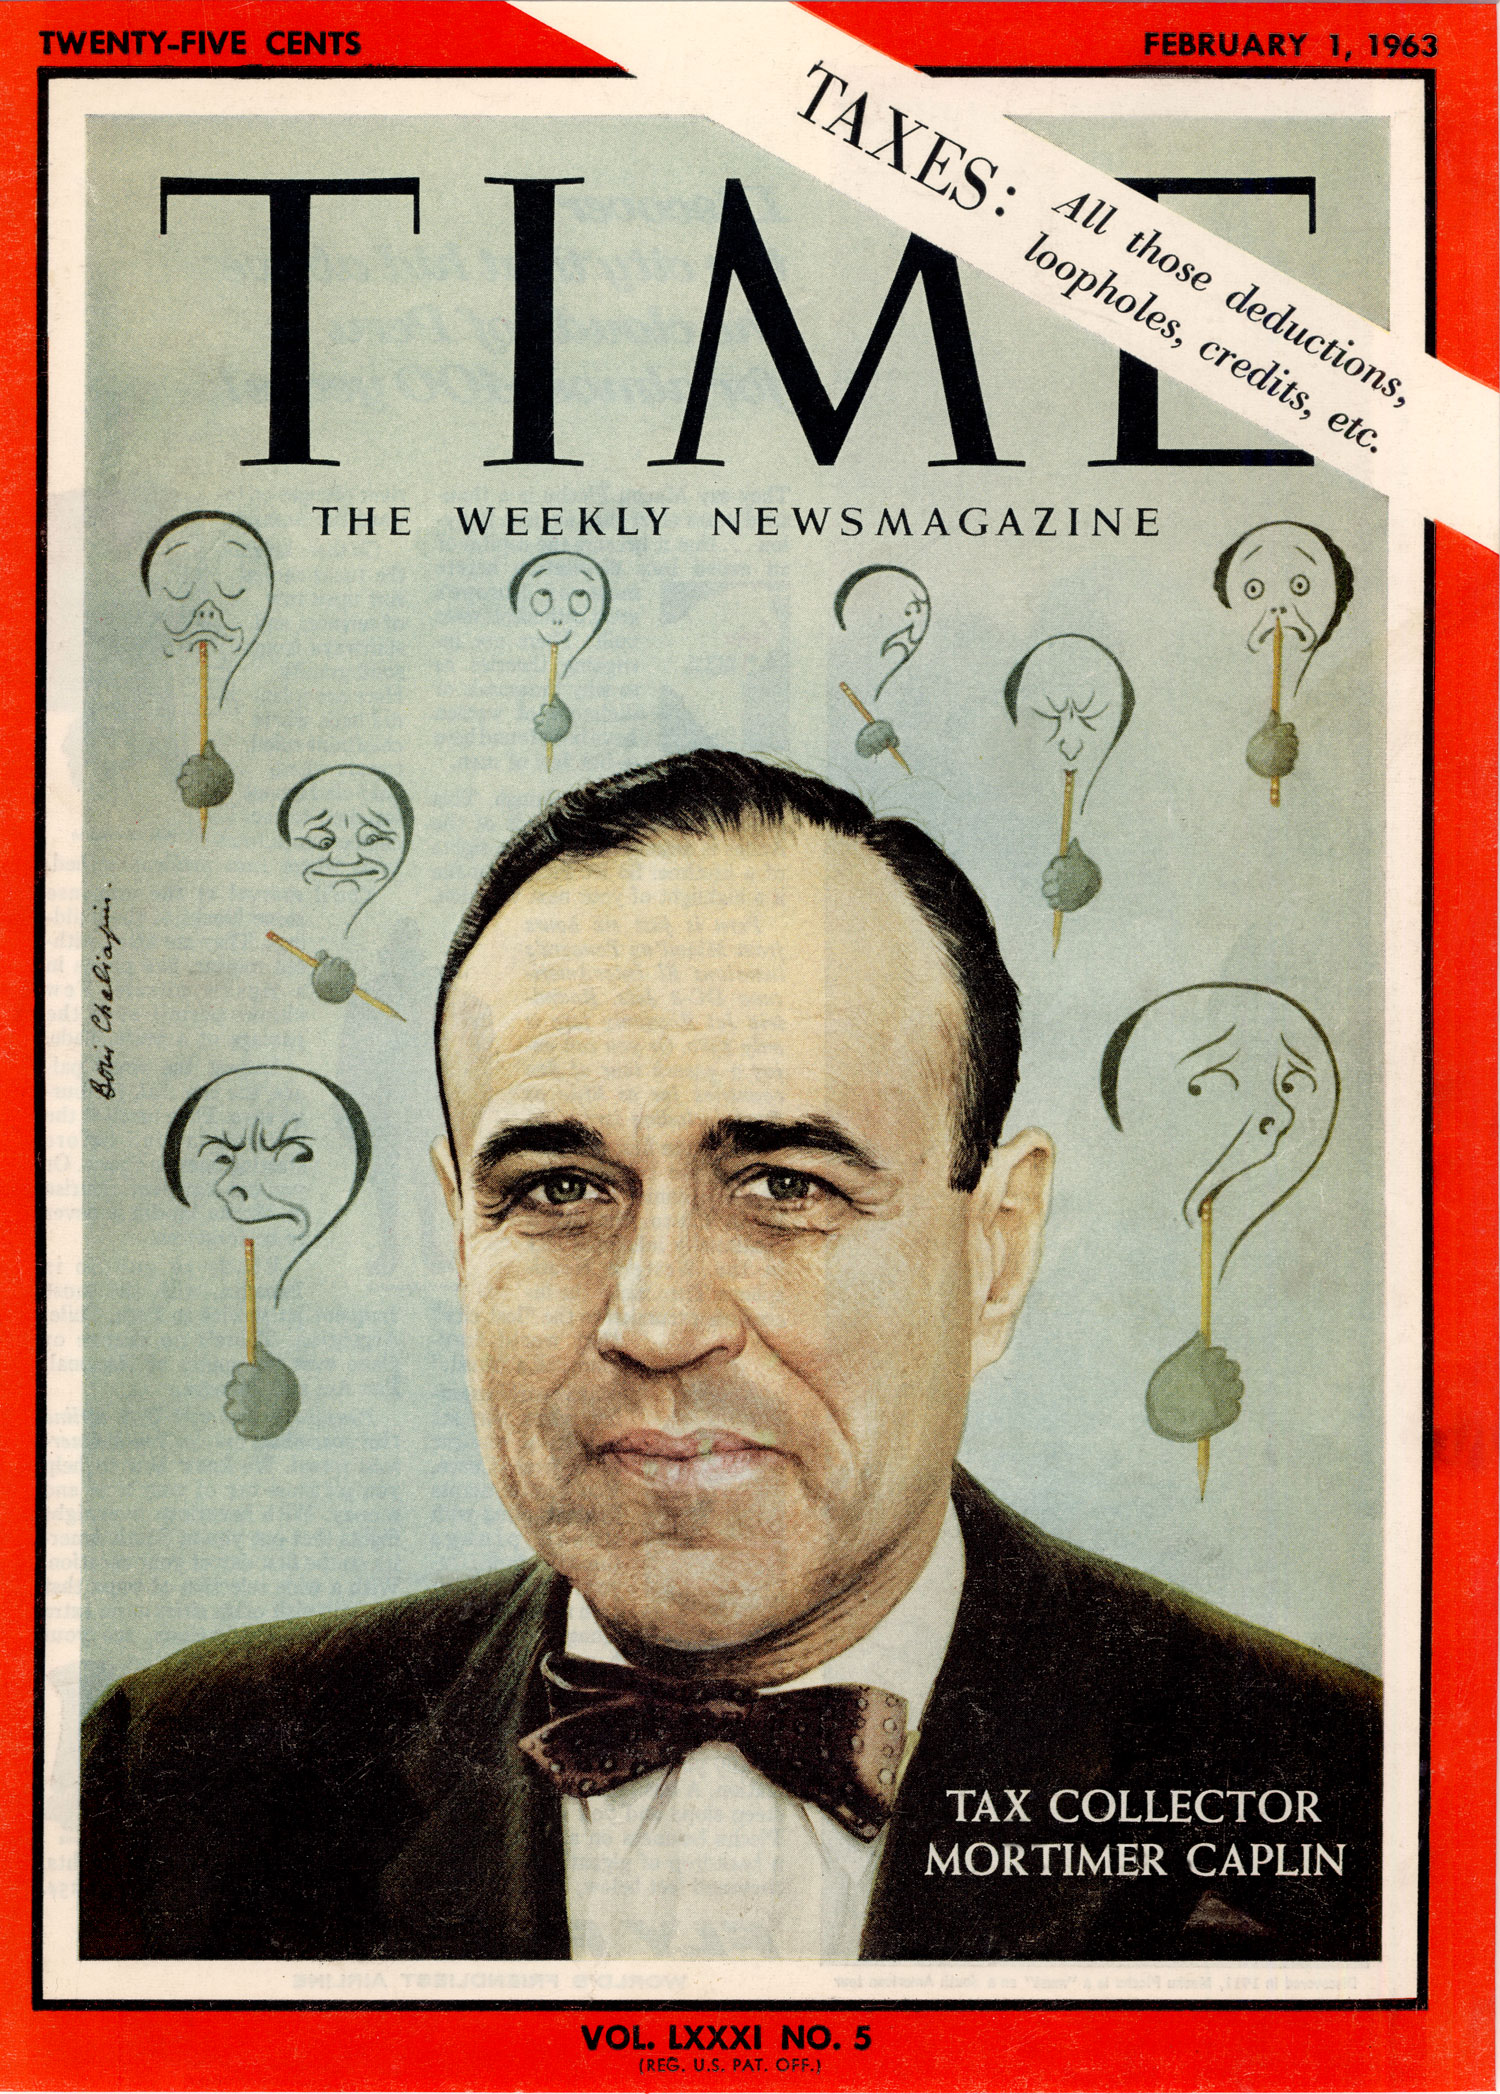 Caplin is the only IRS commissioner to appear on the cover of Time magazine.